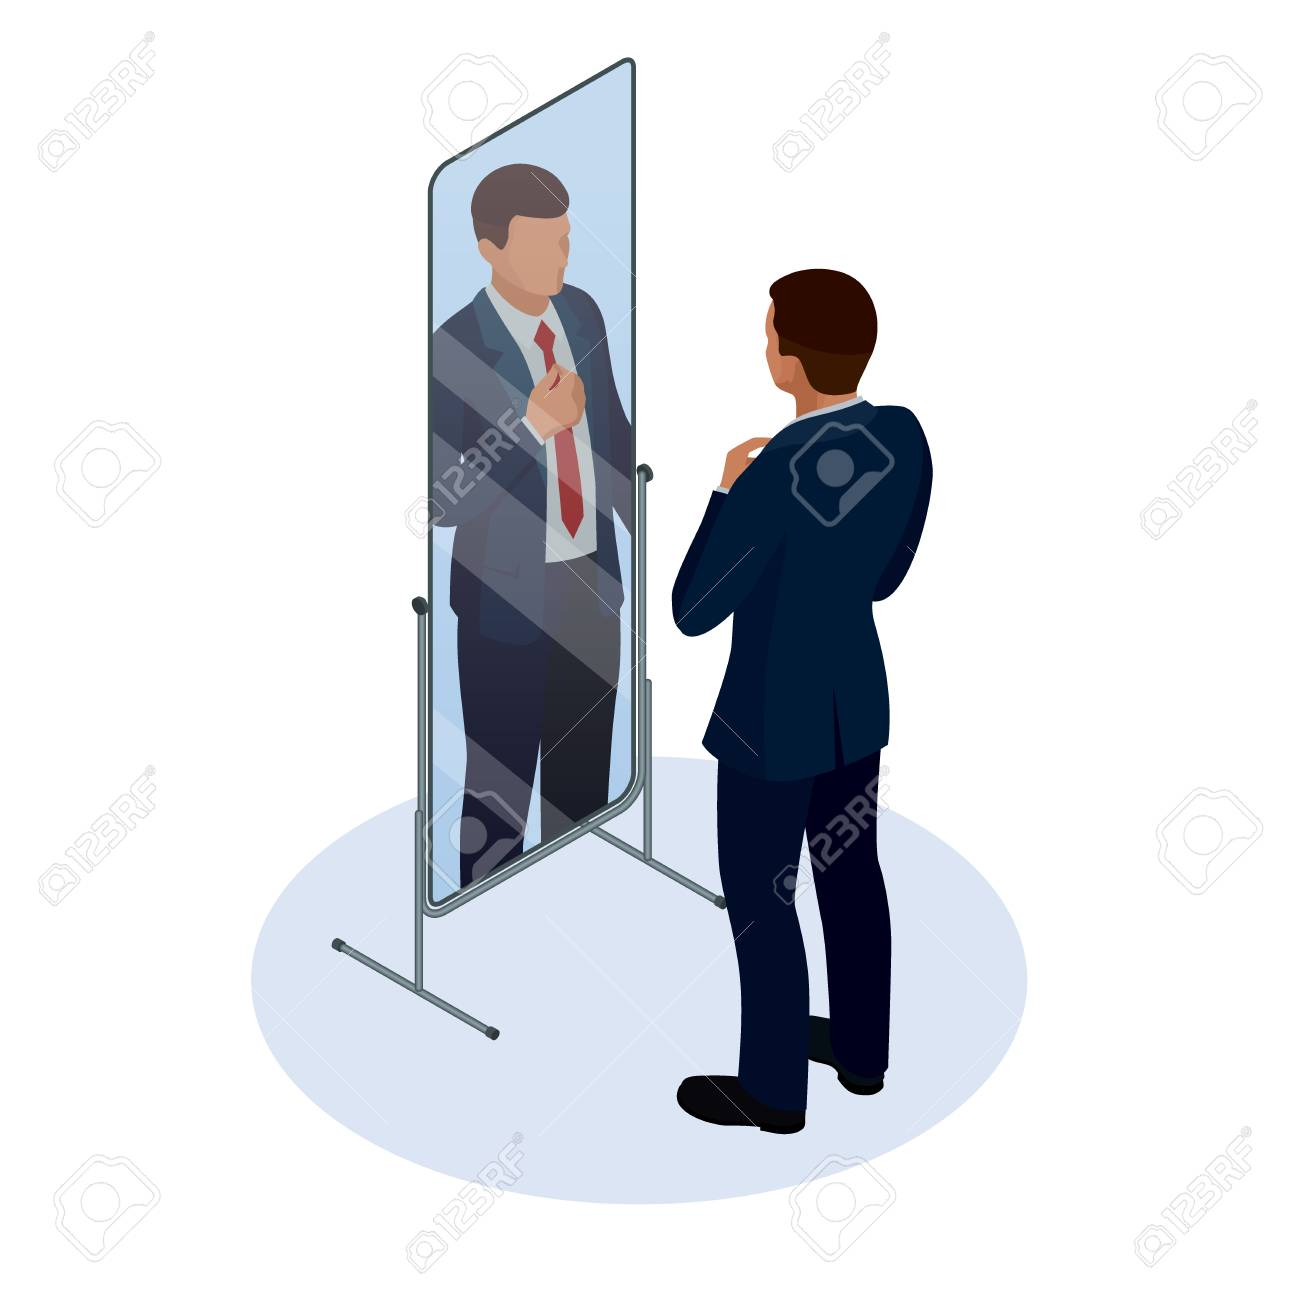 Isometric businessman adjusting tie in front of the mirror. Man checking his appearance in the mirror. Businessman looking himself in the mirror vector flat design illustration. - 100939217